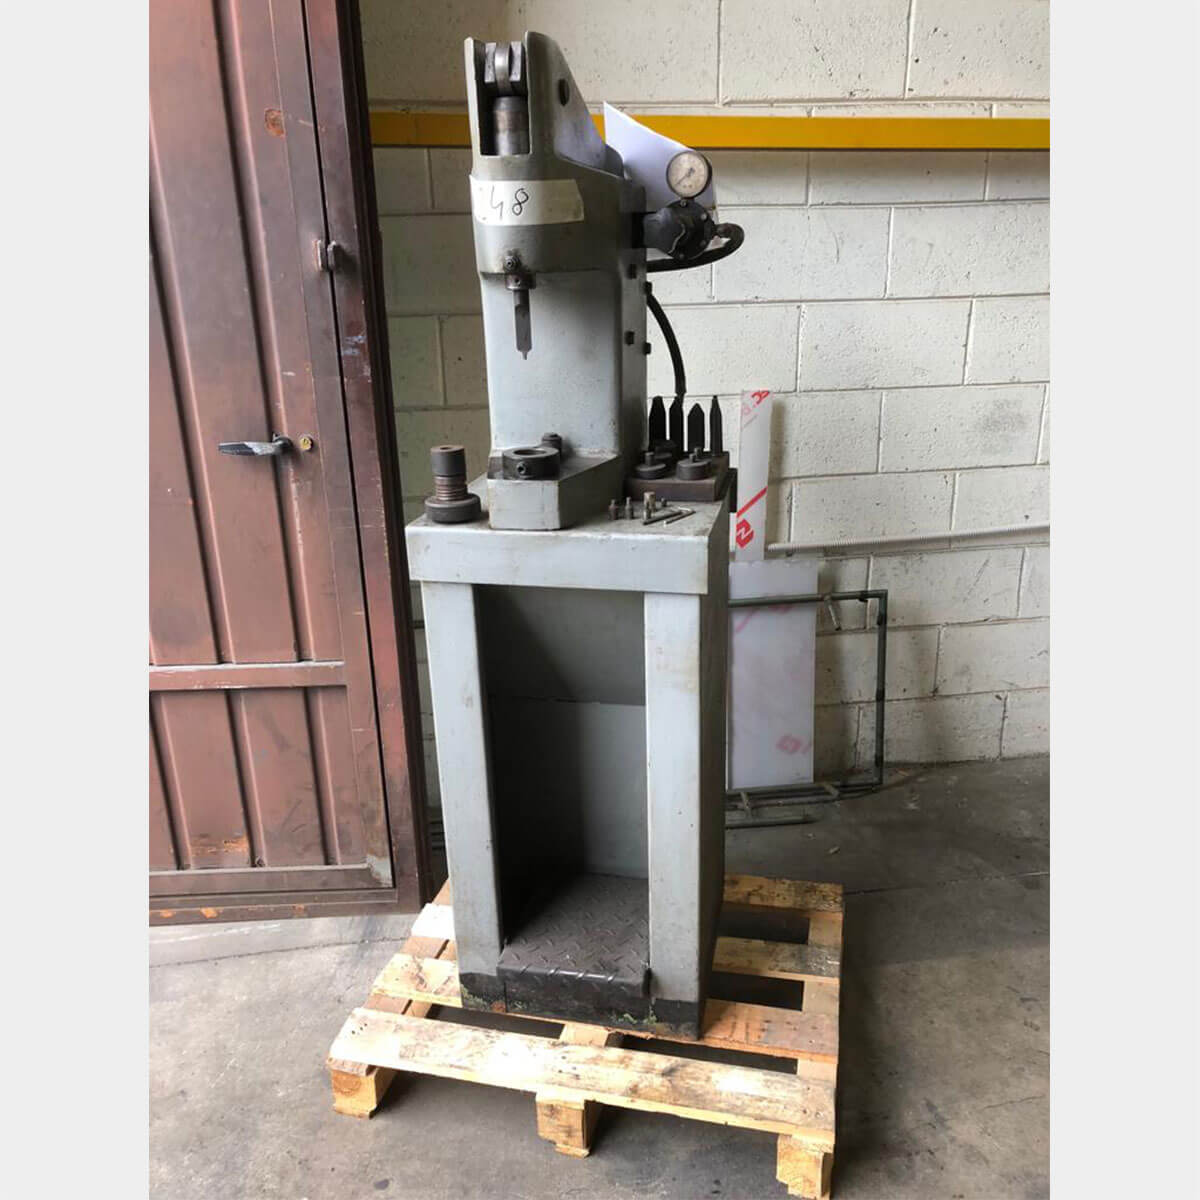 mu248 vis 2 riveting machine